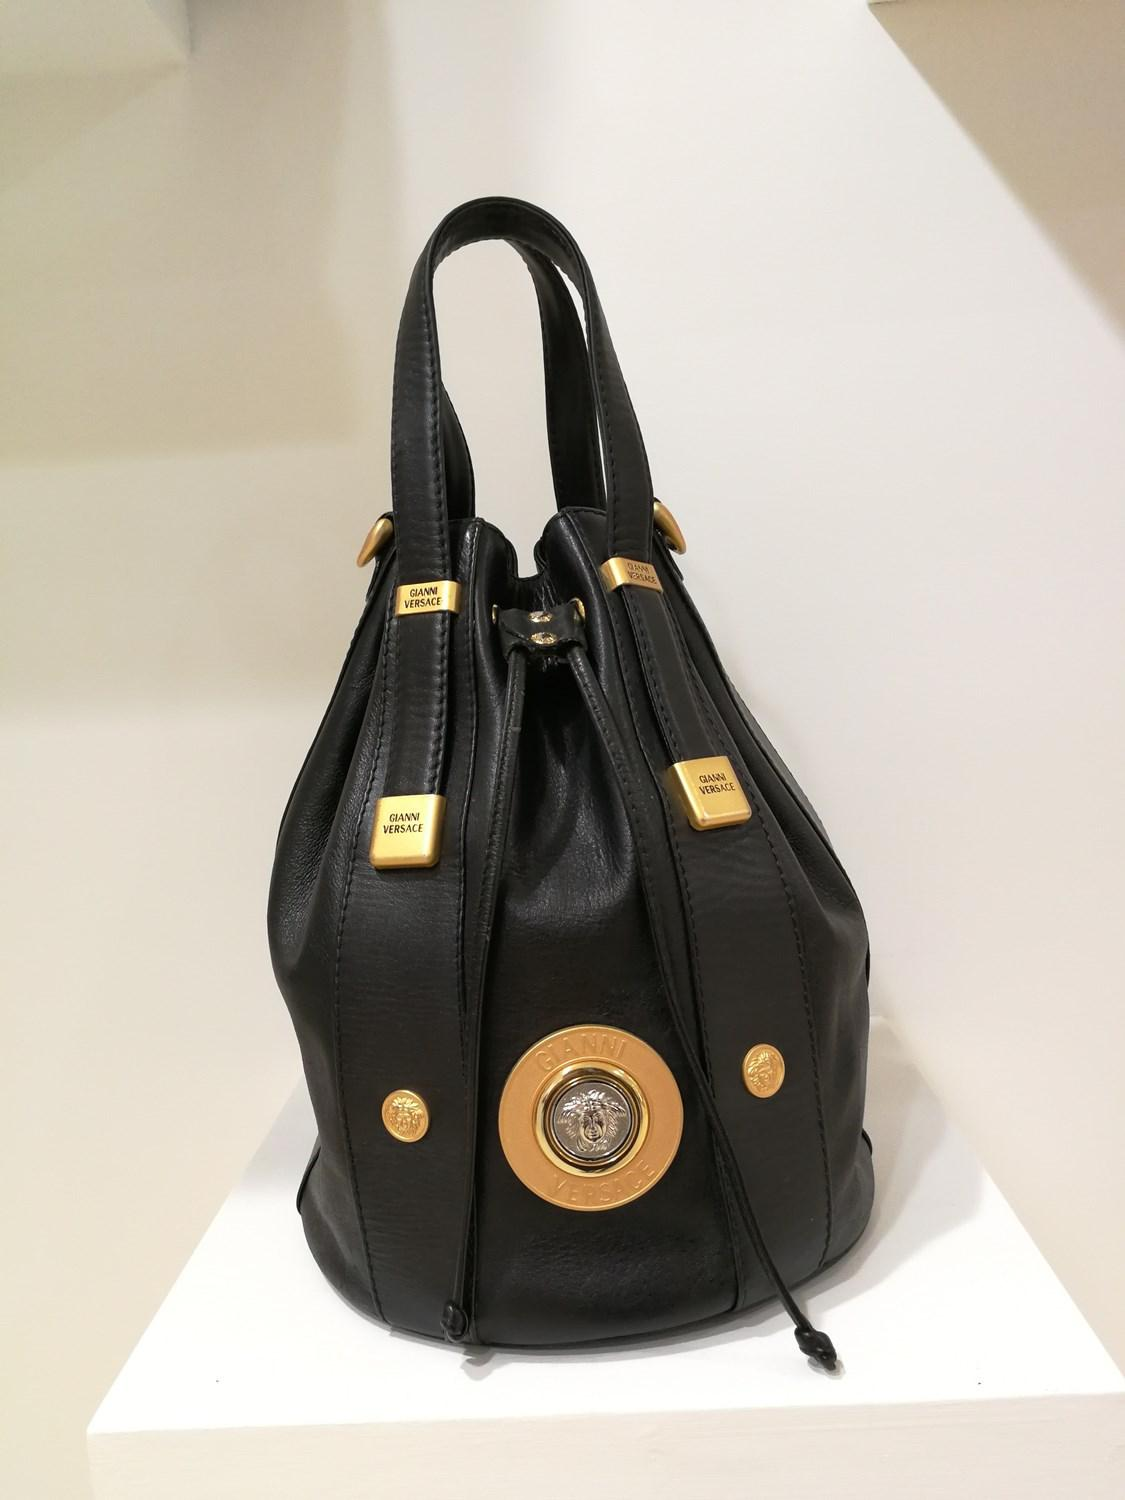 3a679967c5f ... Versace Small Dv One Bag Black Reebonz  on sale e1dfd 87a2d Black  Backpack With Gold Spikes ...